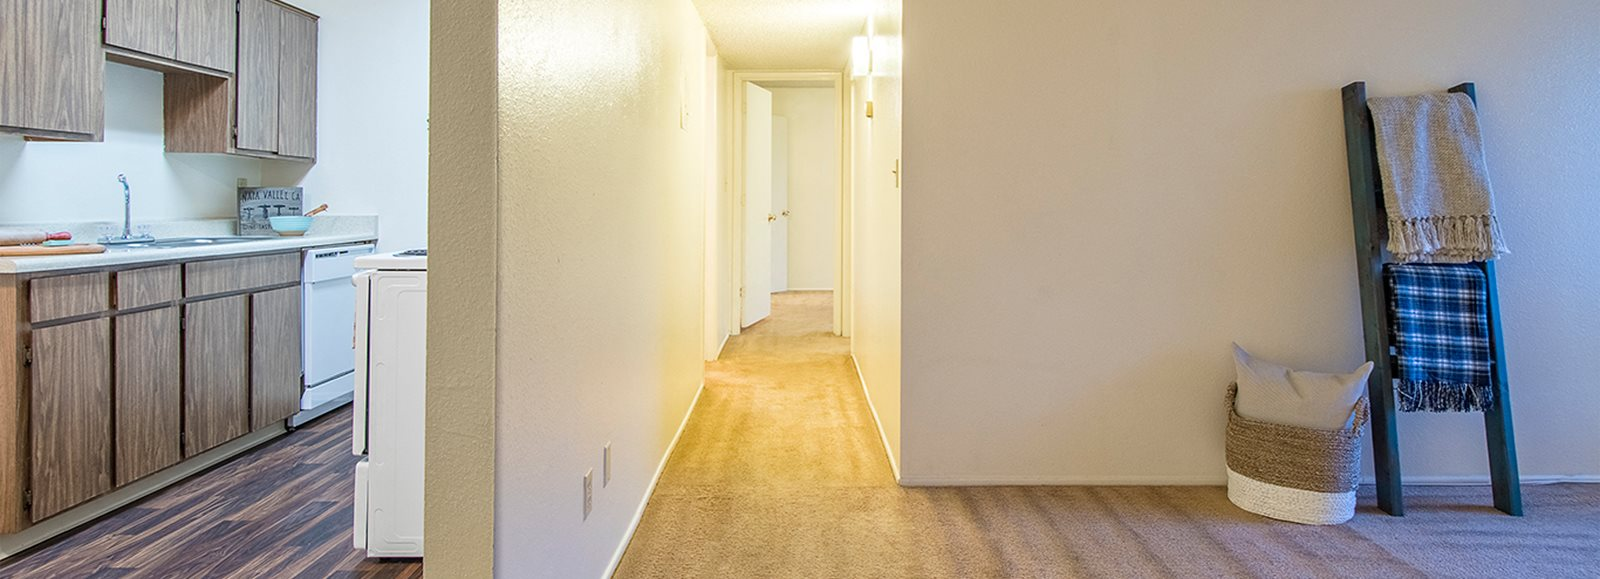 Tanglewood spacious apartments with carpet flooring  and nice lighting